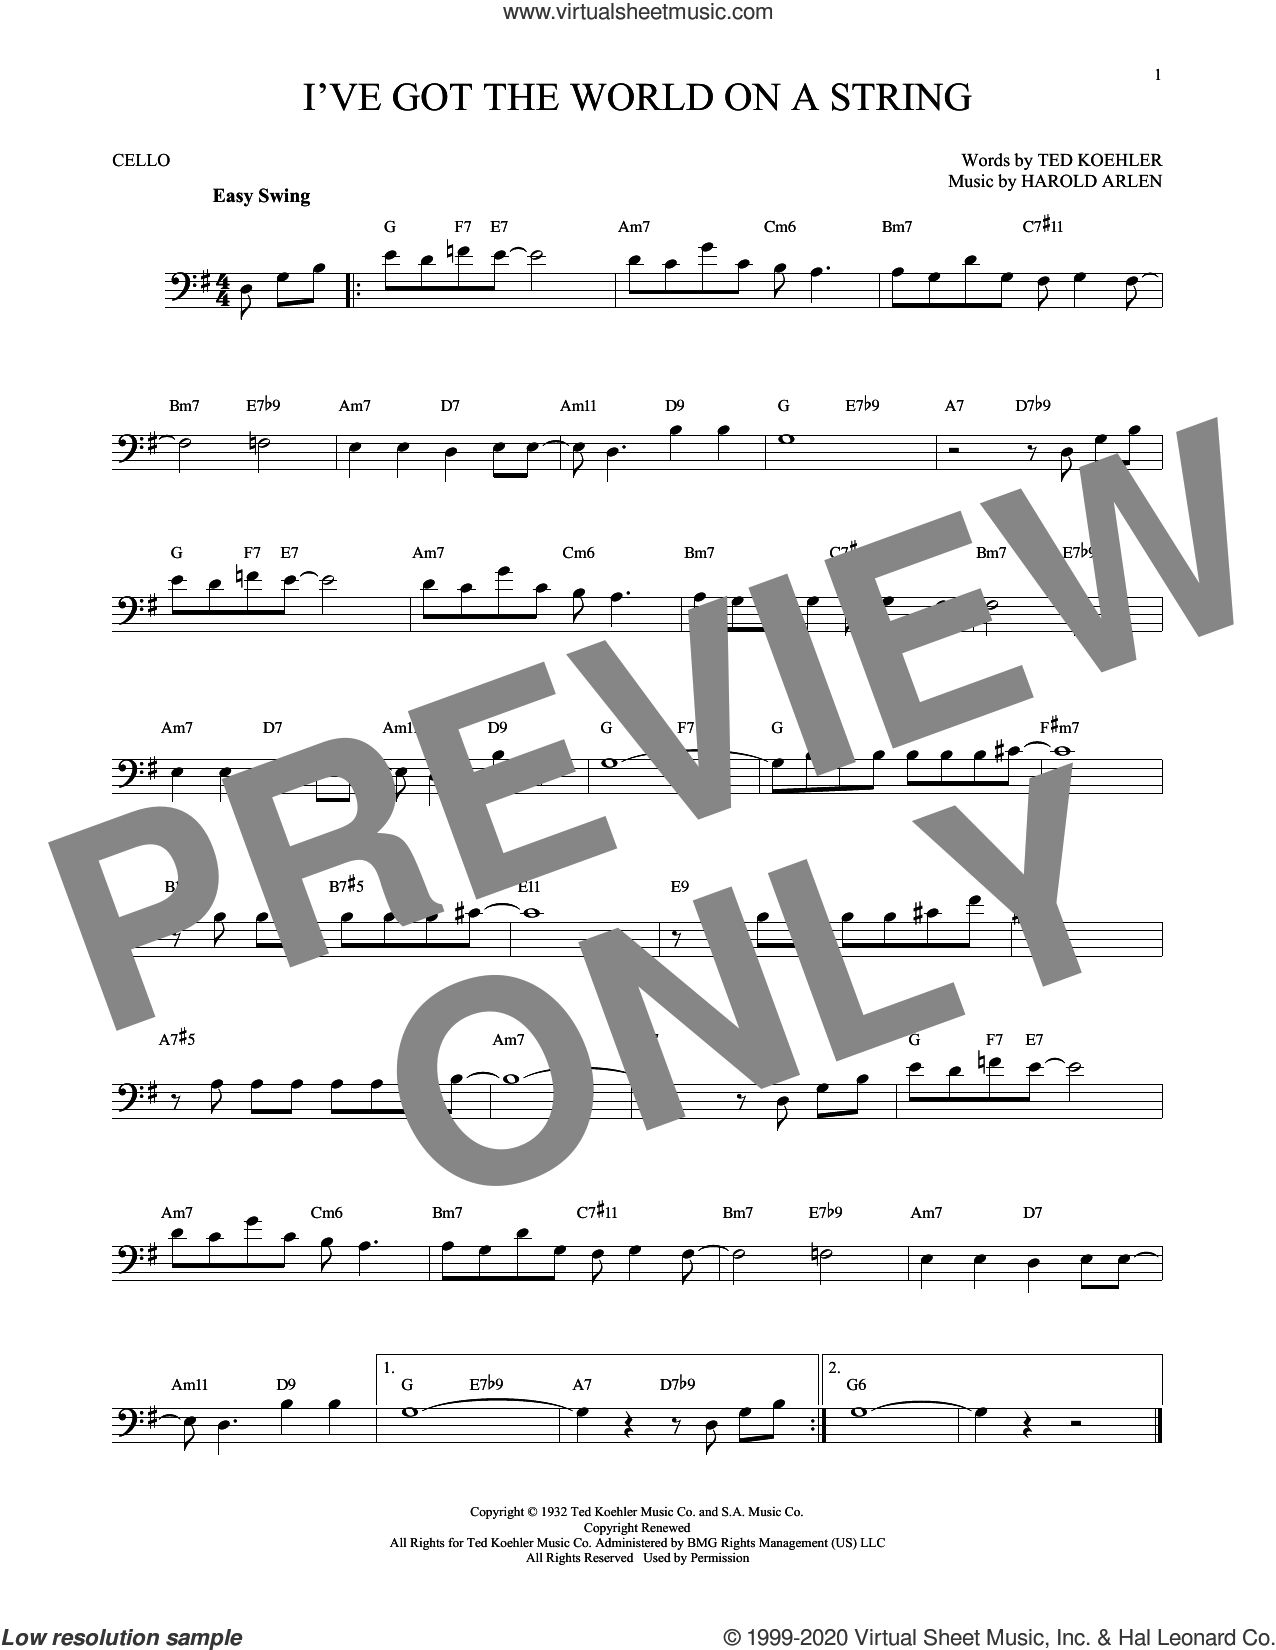 I've Got The World On A String sheet music for cello solo by Harold Arlen, Dick Hyman and Ted Koehler, intermediate skill level